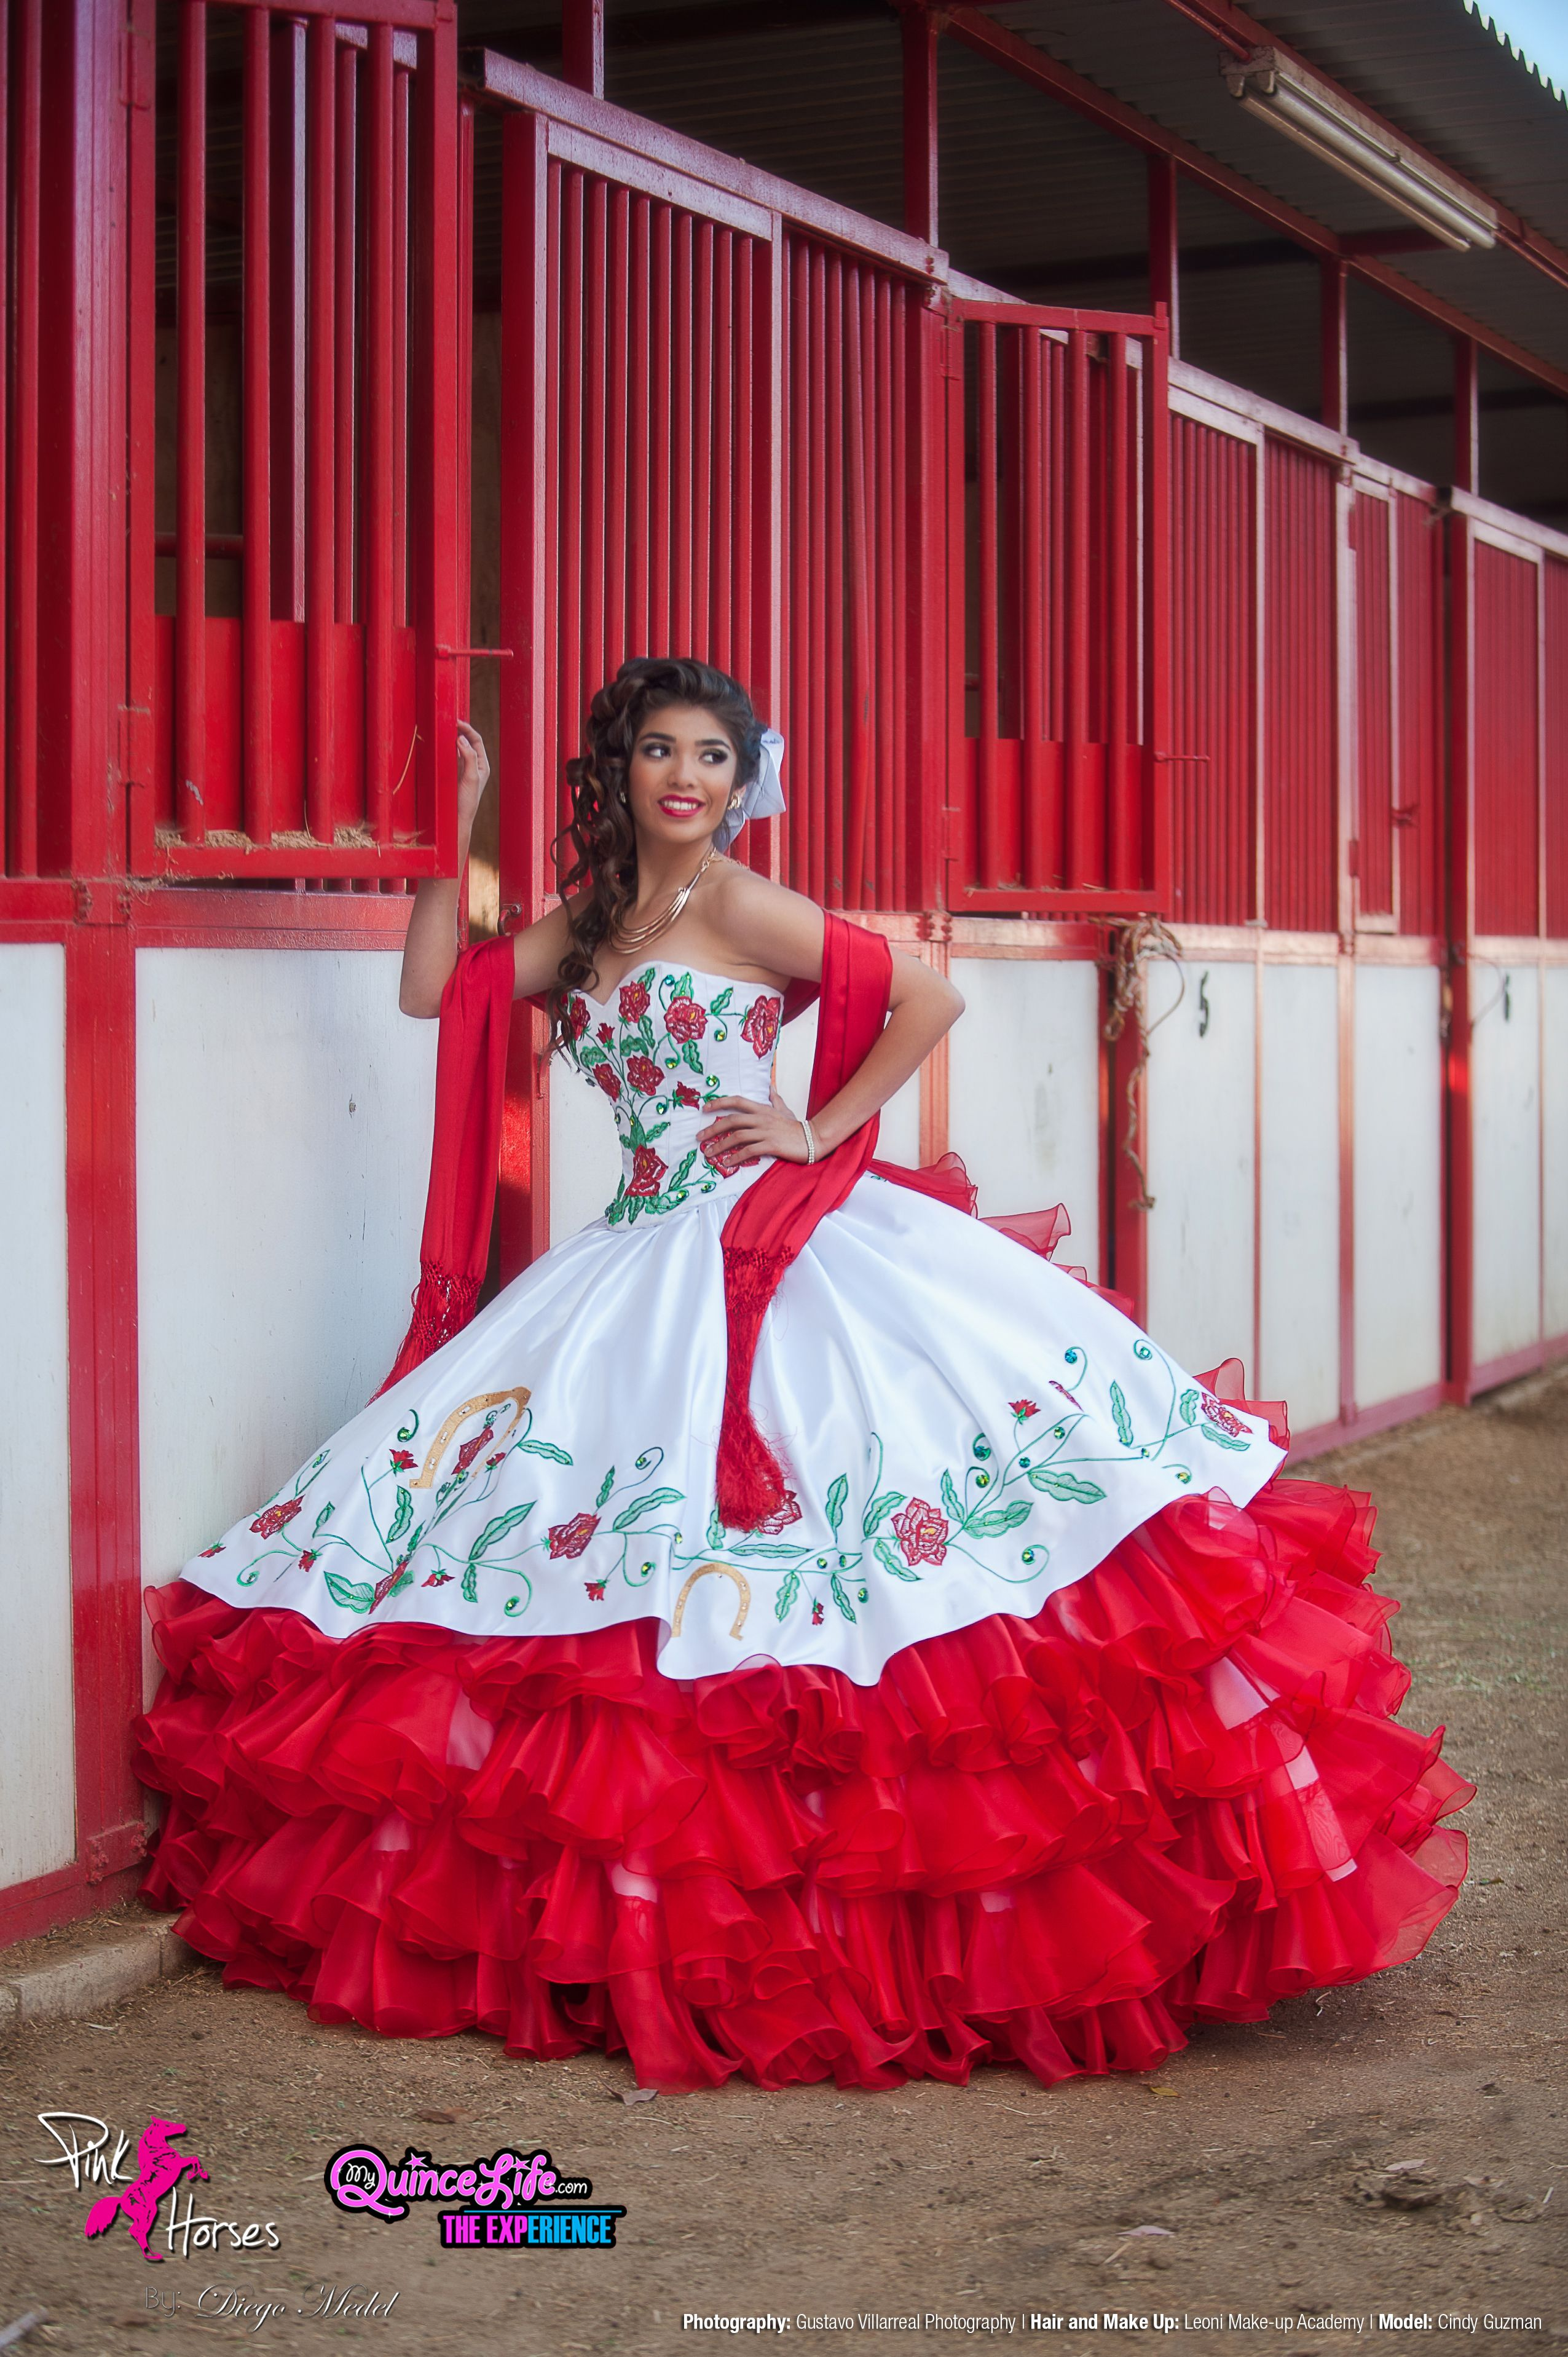 Cute 15 Year Old Girl Images Usseek Com: Mariachi 15 Dresses Images